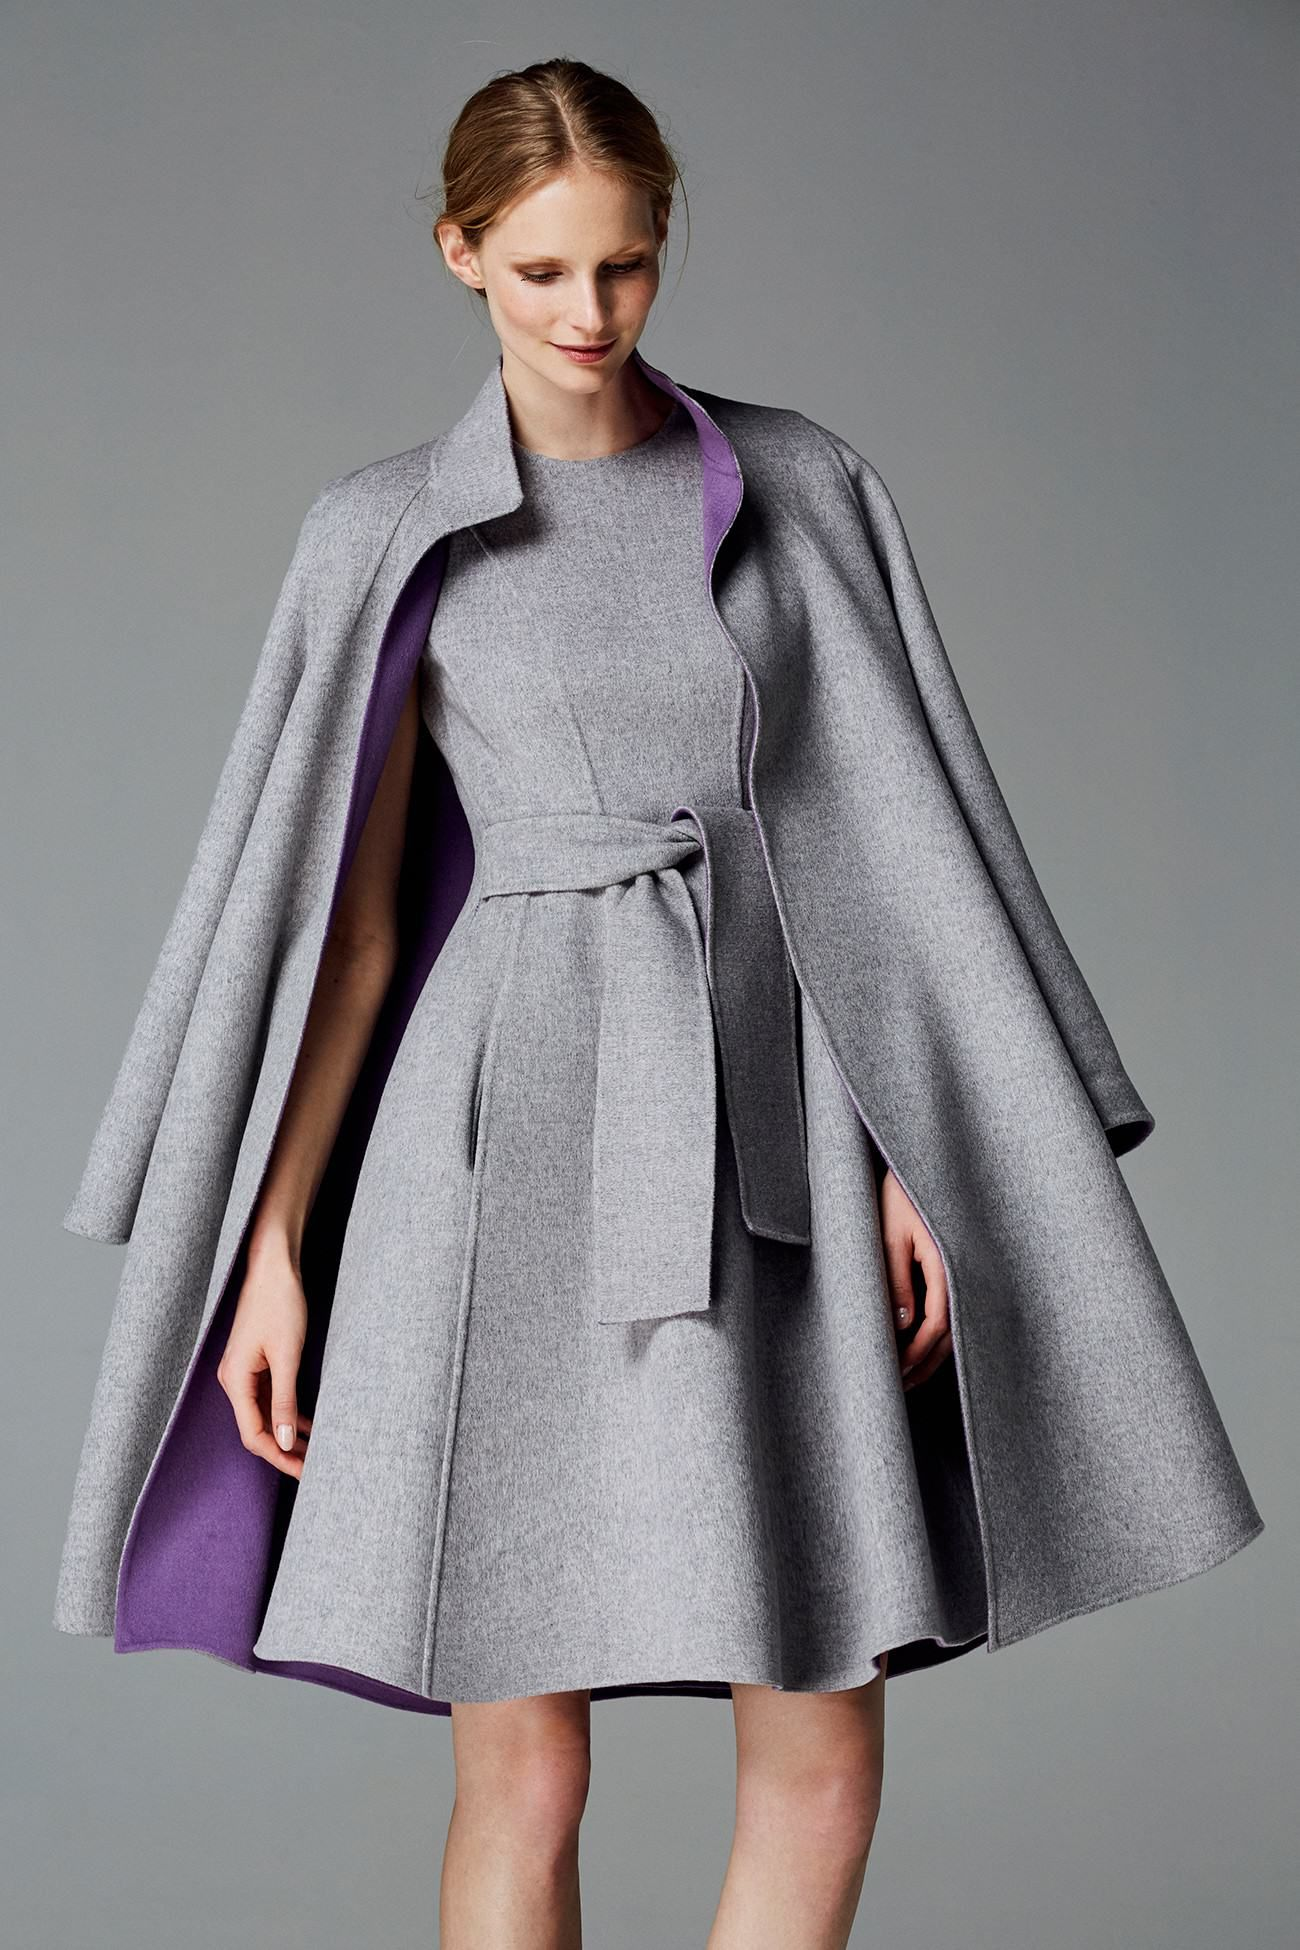 CH Carolina Herrera Fall 2016 grey wool coat and dress. Debuted ...